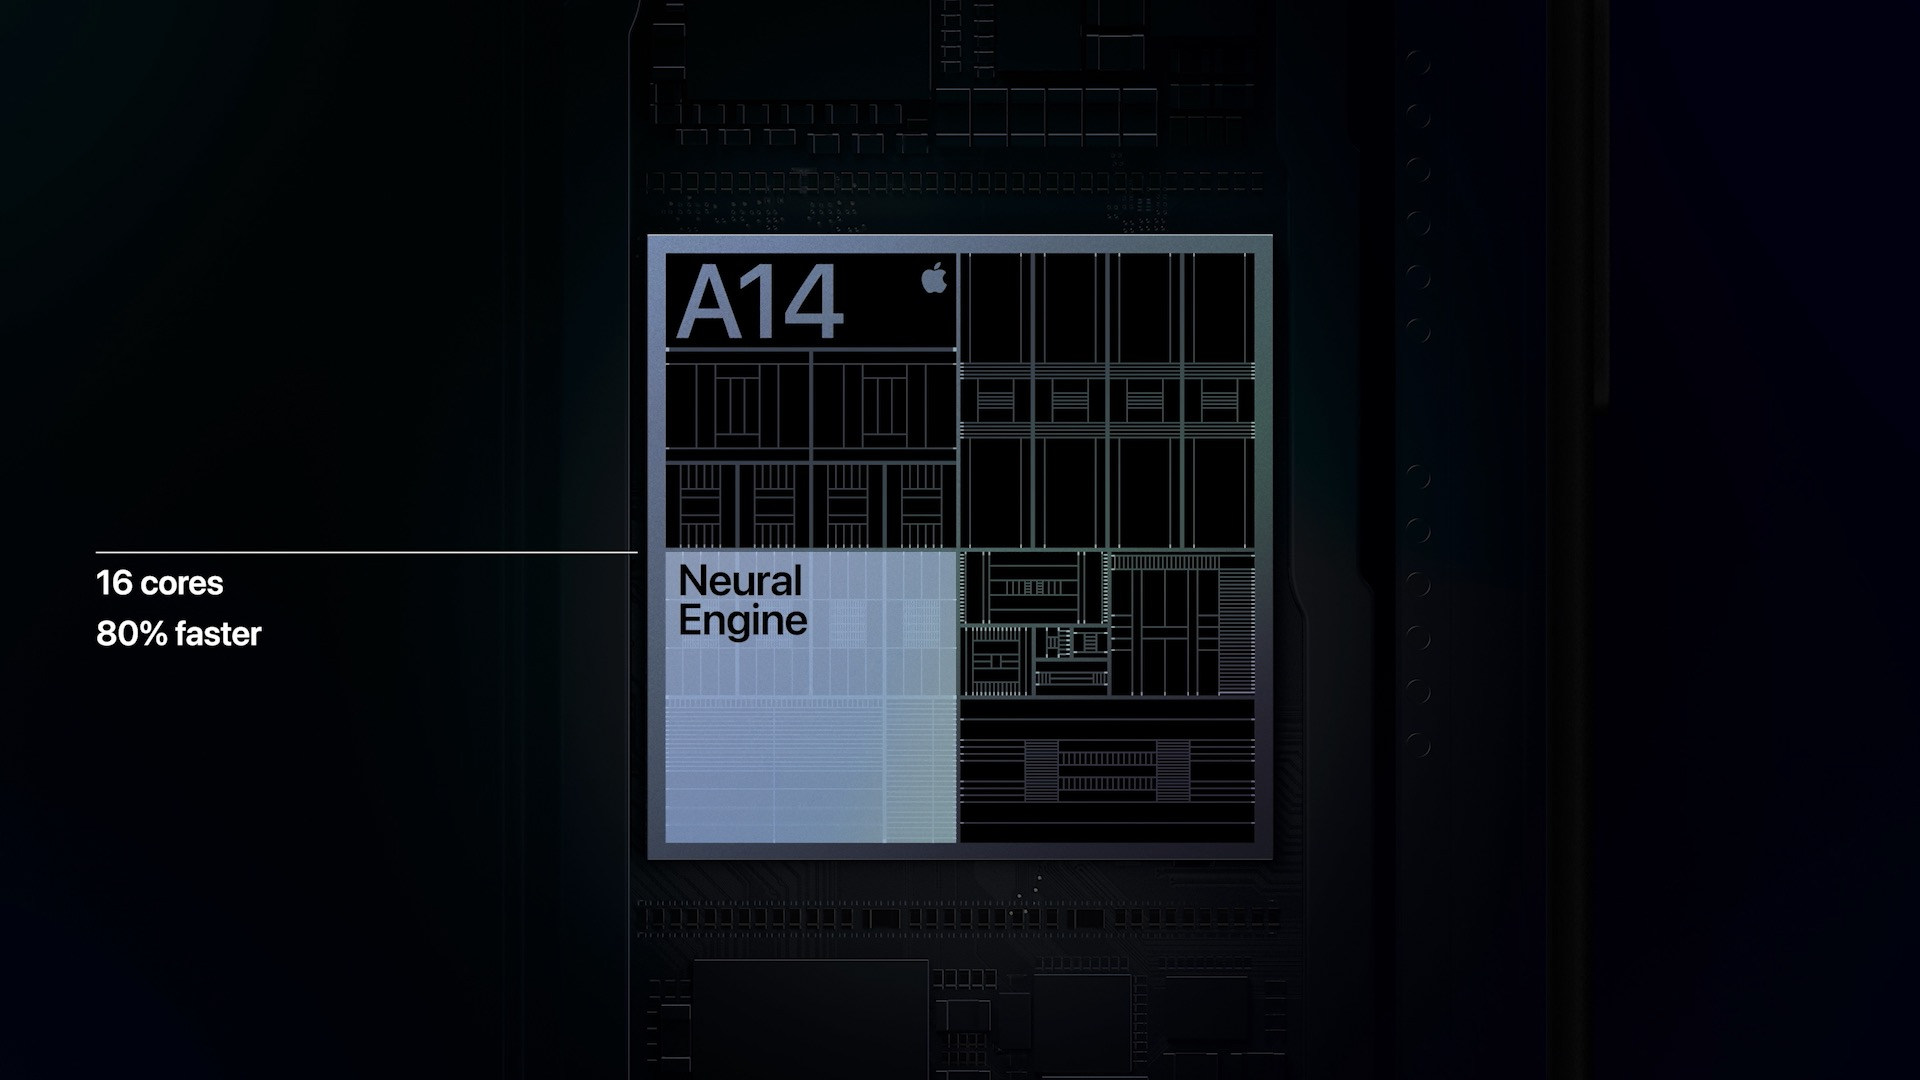 Neural Engine A14